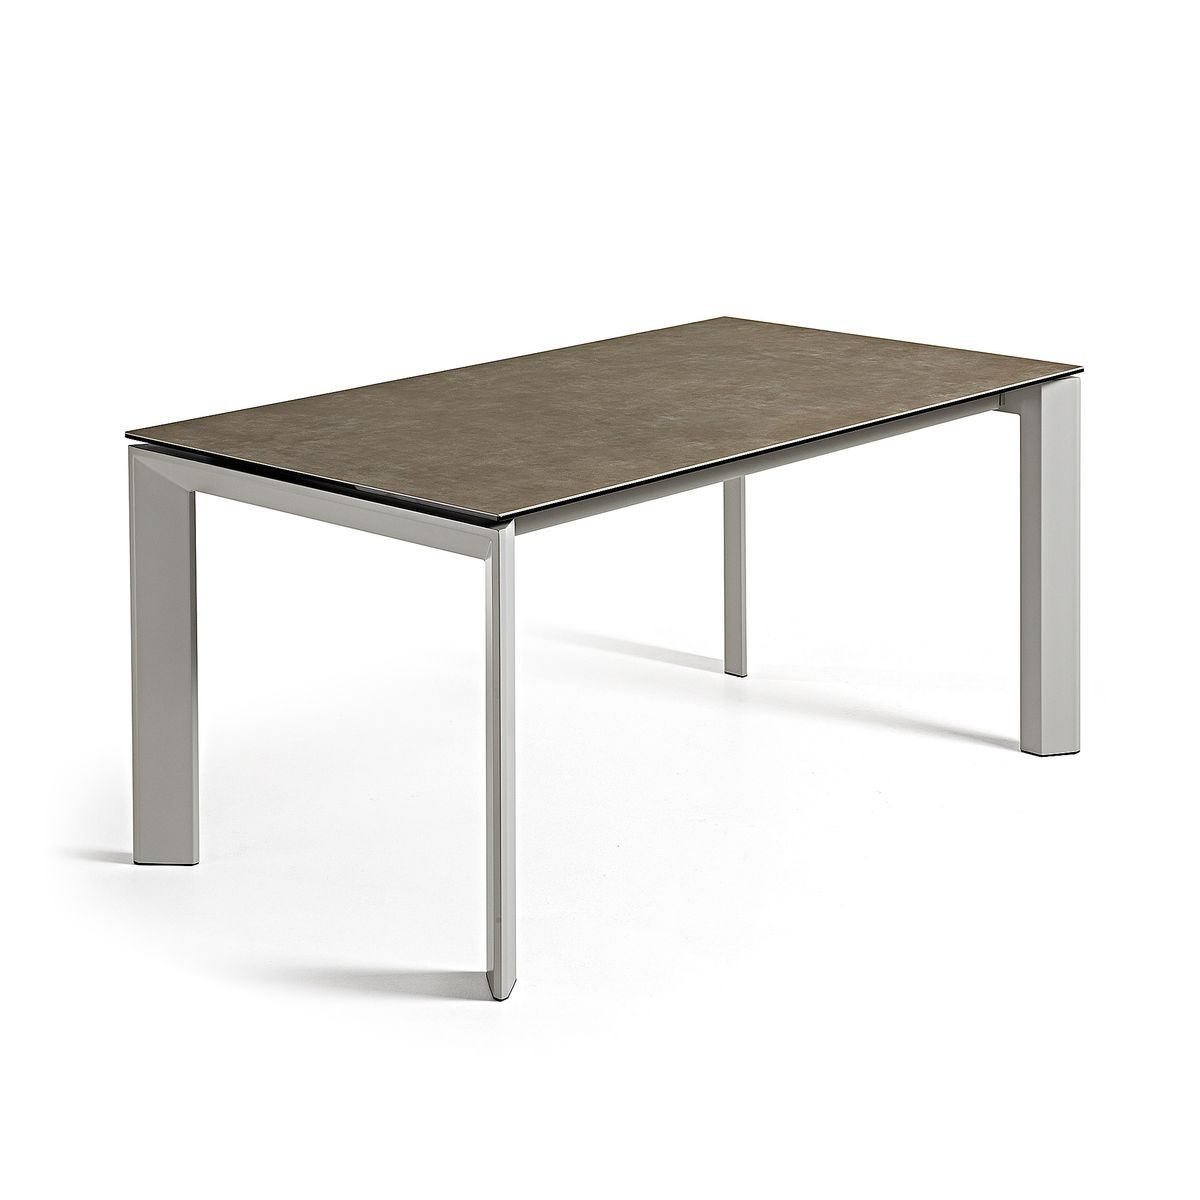 AxisGris Taille x90 Table Vulcano Ceniza Et 140 200 Extensible uKJF15Tlc3